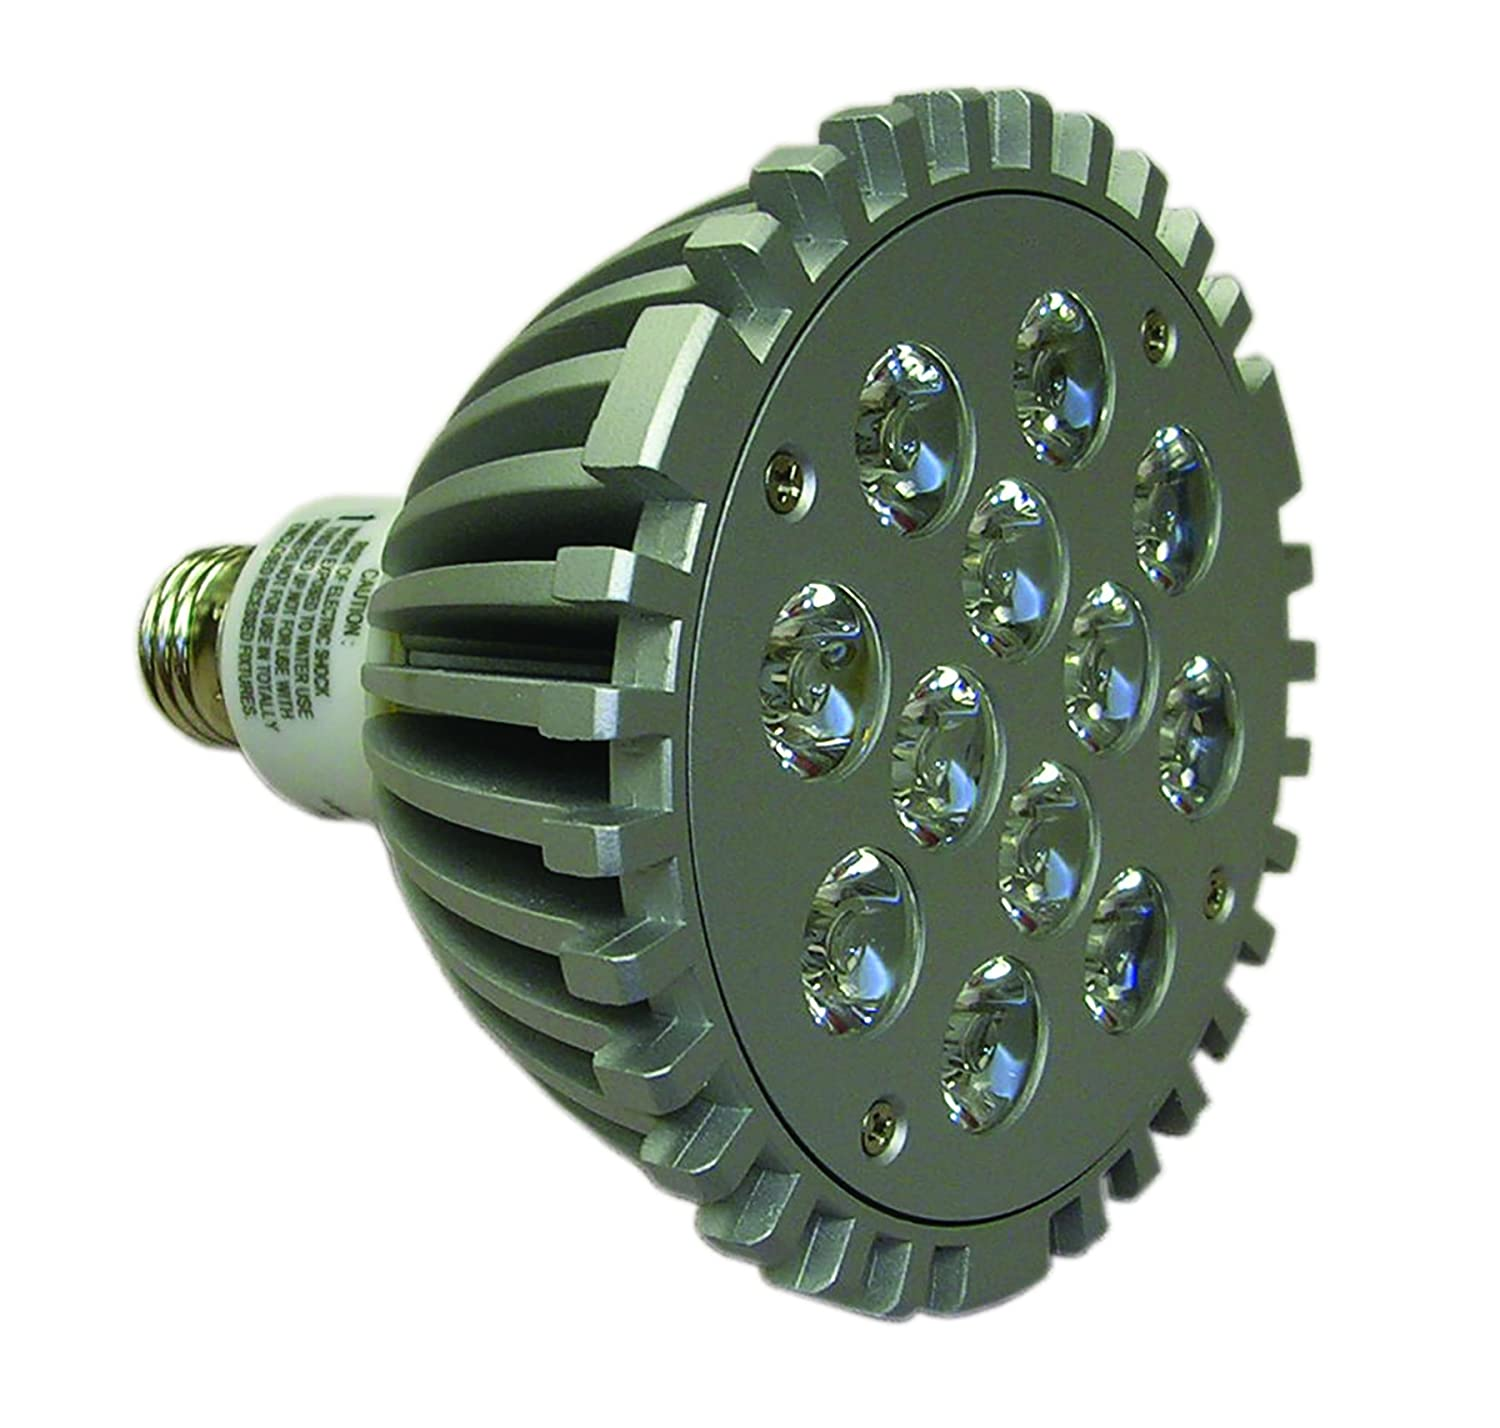 May be Used on Dock Light Arms and Utility Lights TPI Corporation LED12 12 Watt LED Bulb May be Used in Any Applicable TPI Light Head